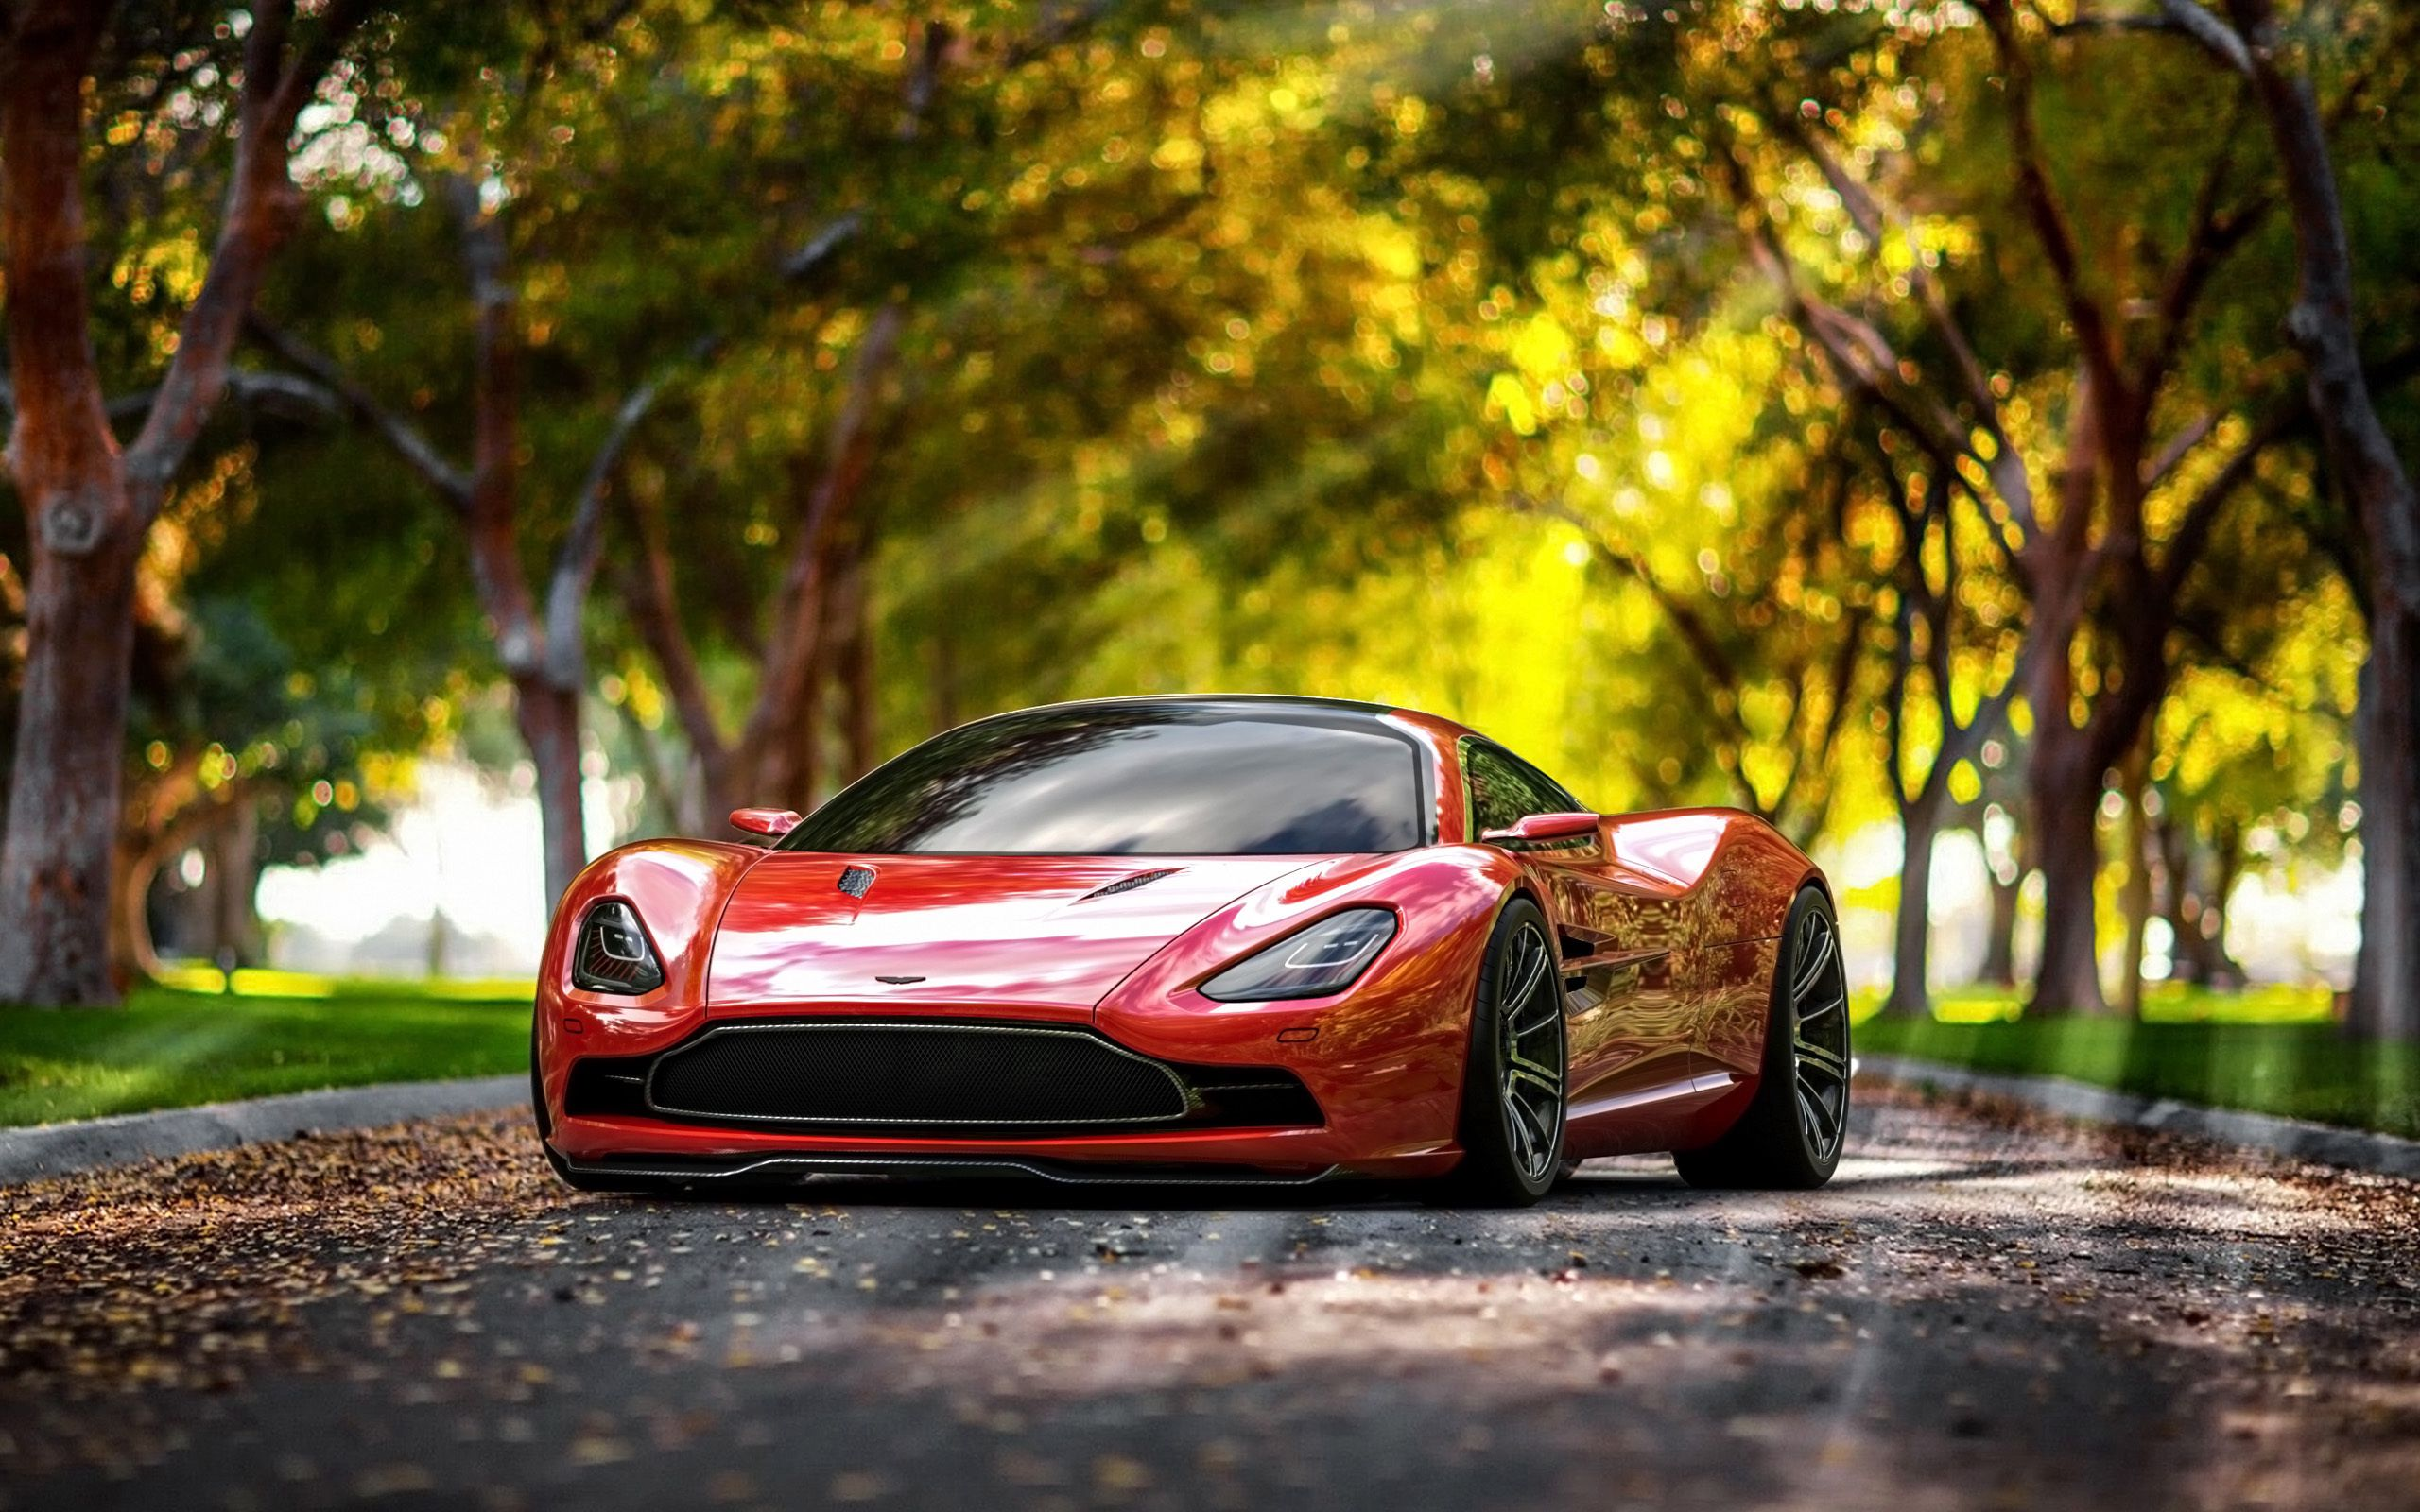 91697 download wallpaper Cars, Aston Martin, Concept, Dbc screensavers and pictures for free